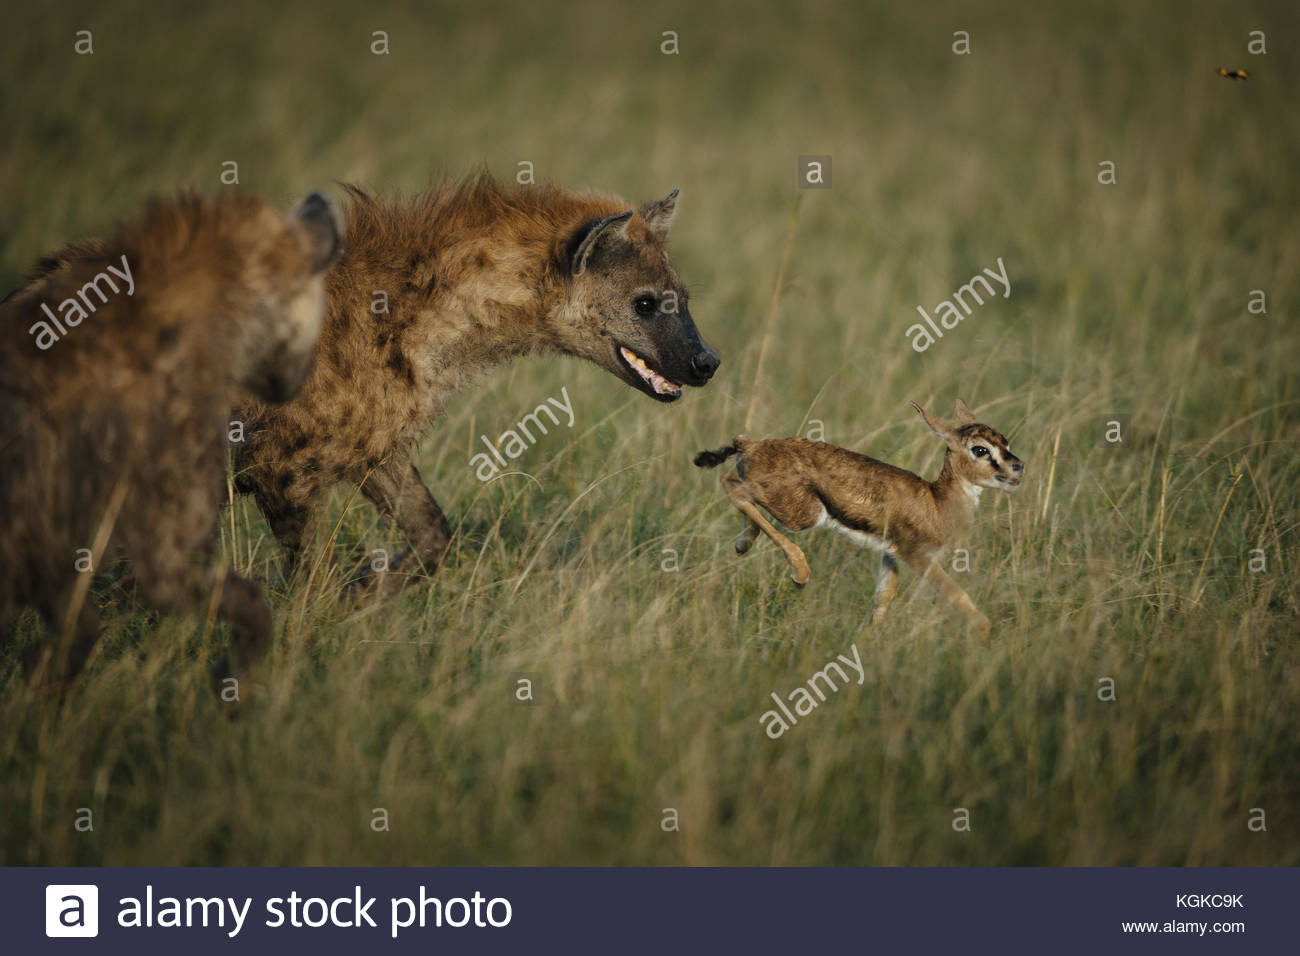 Spotted hyenas, Crocuta crocuta, hunting a newly born Thompson's Gazelle in the Masai Mara Reserve. - Stock Image